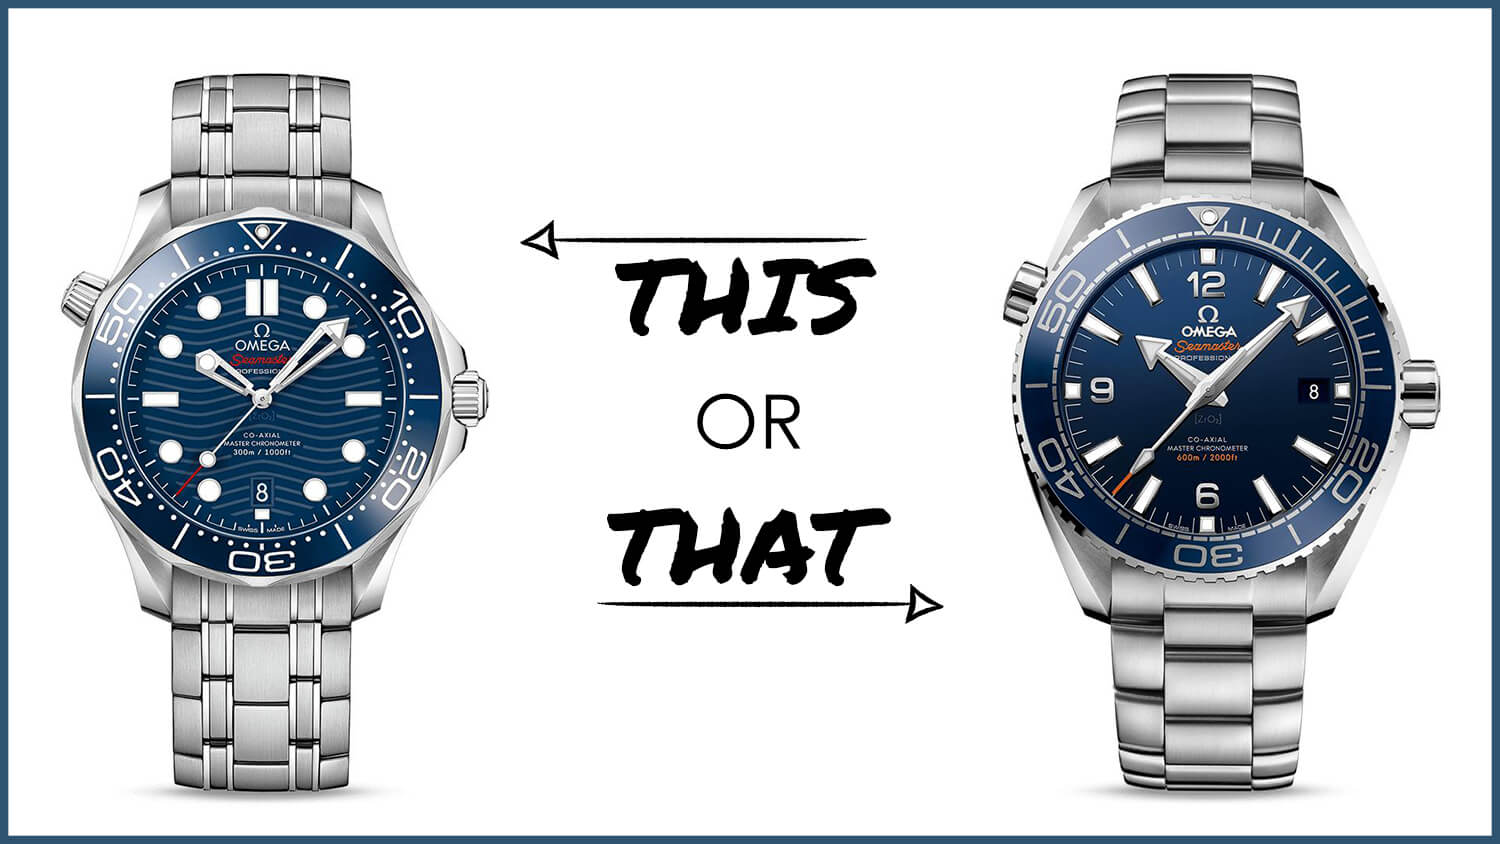 Watch 101: This or That – The Omega Seamaster Professional or Planet Ocean